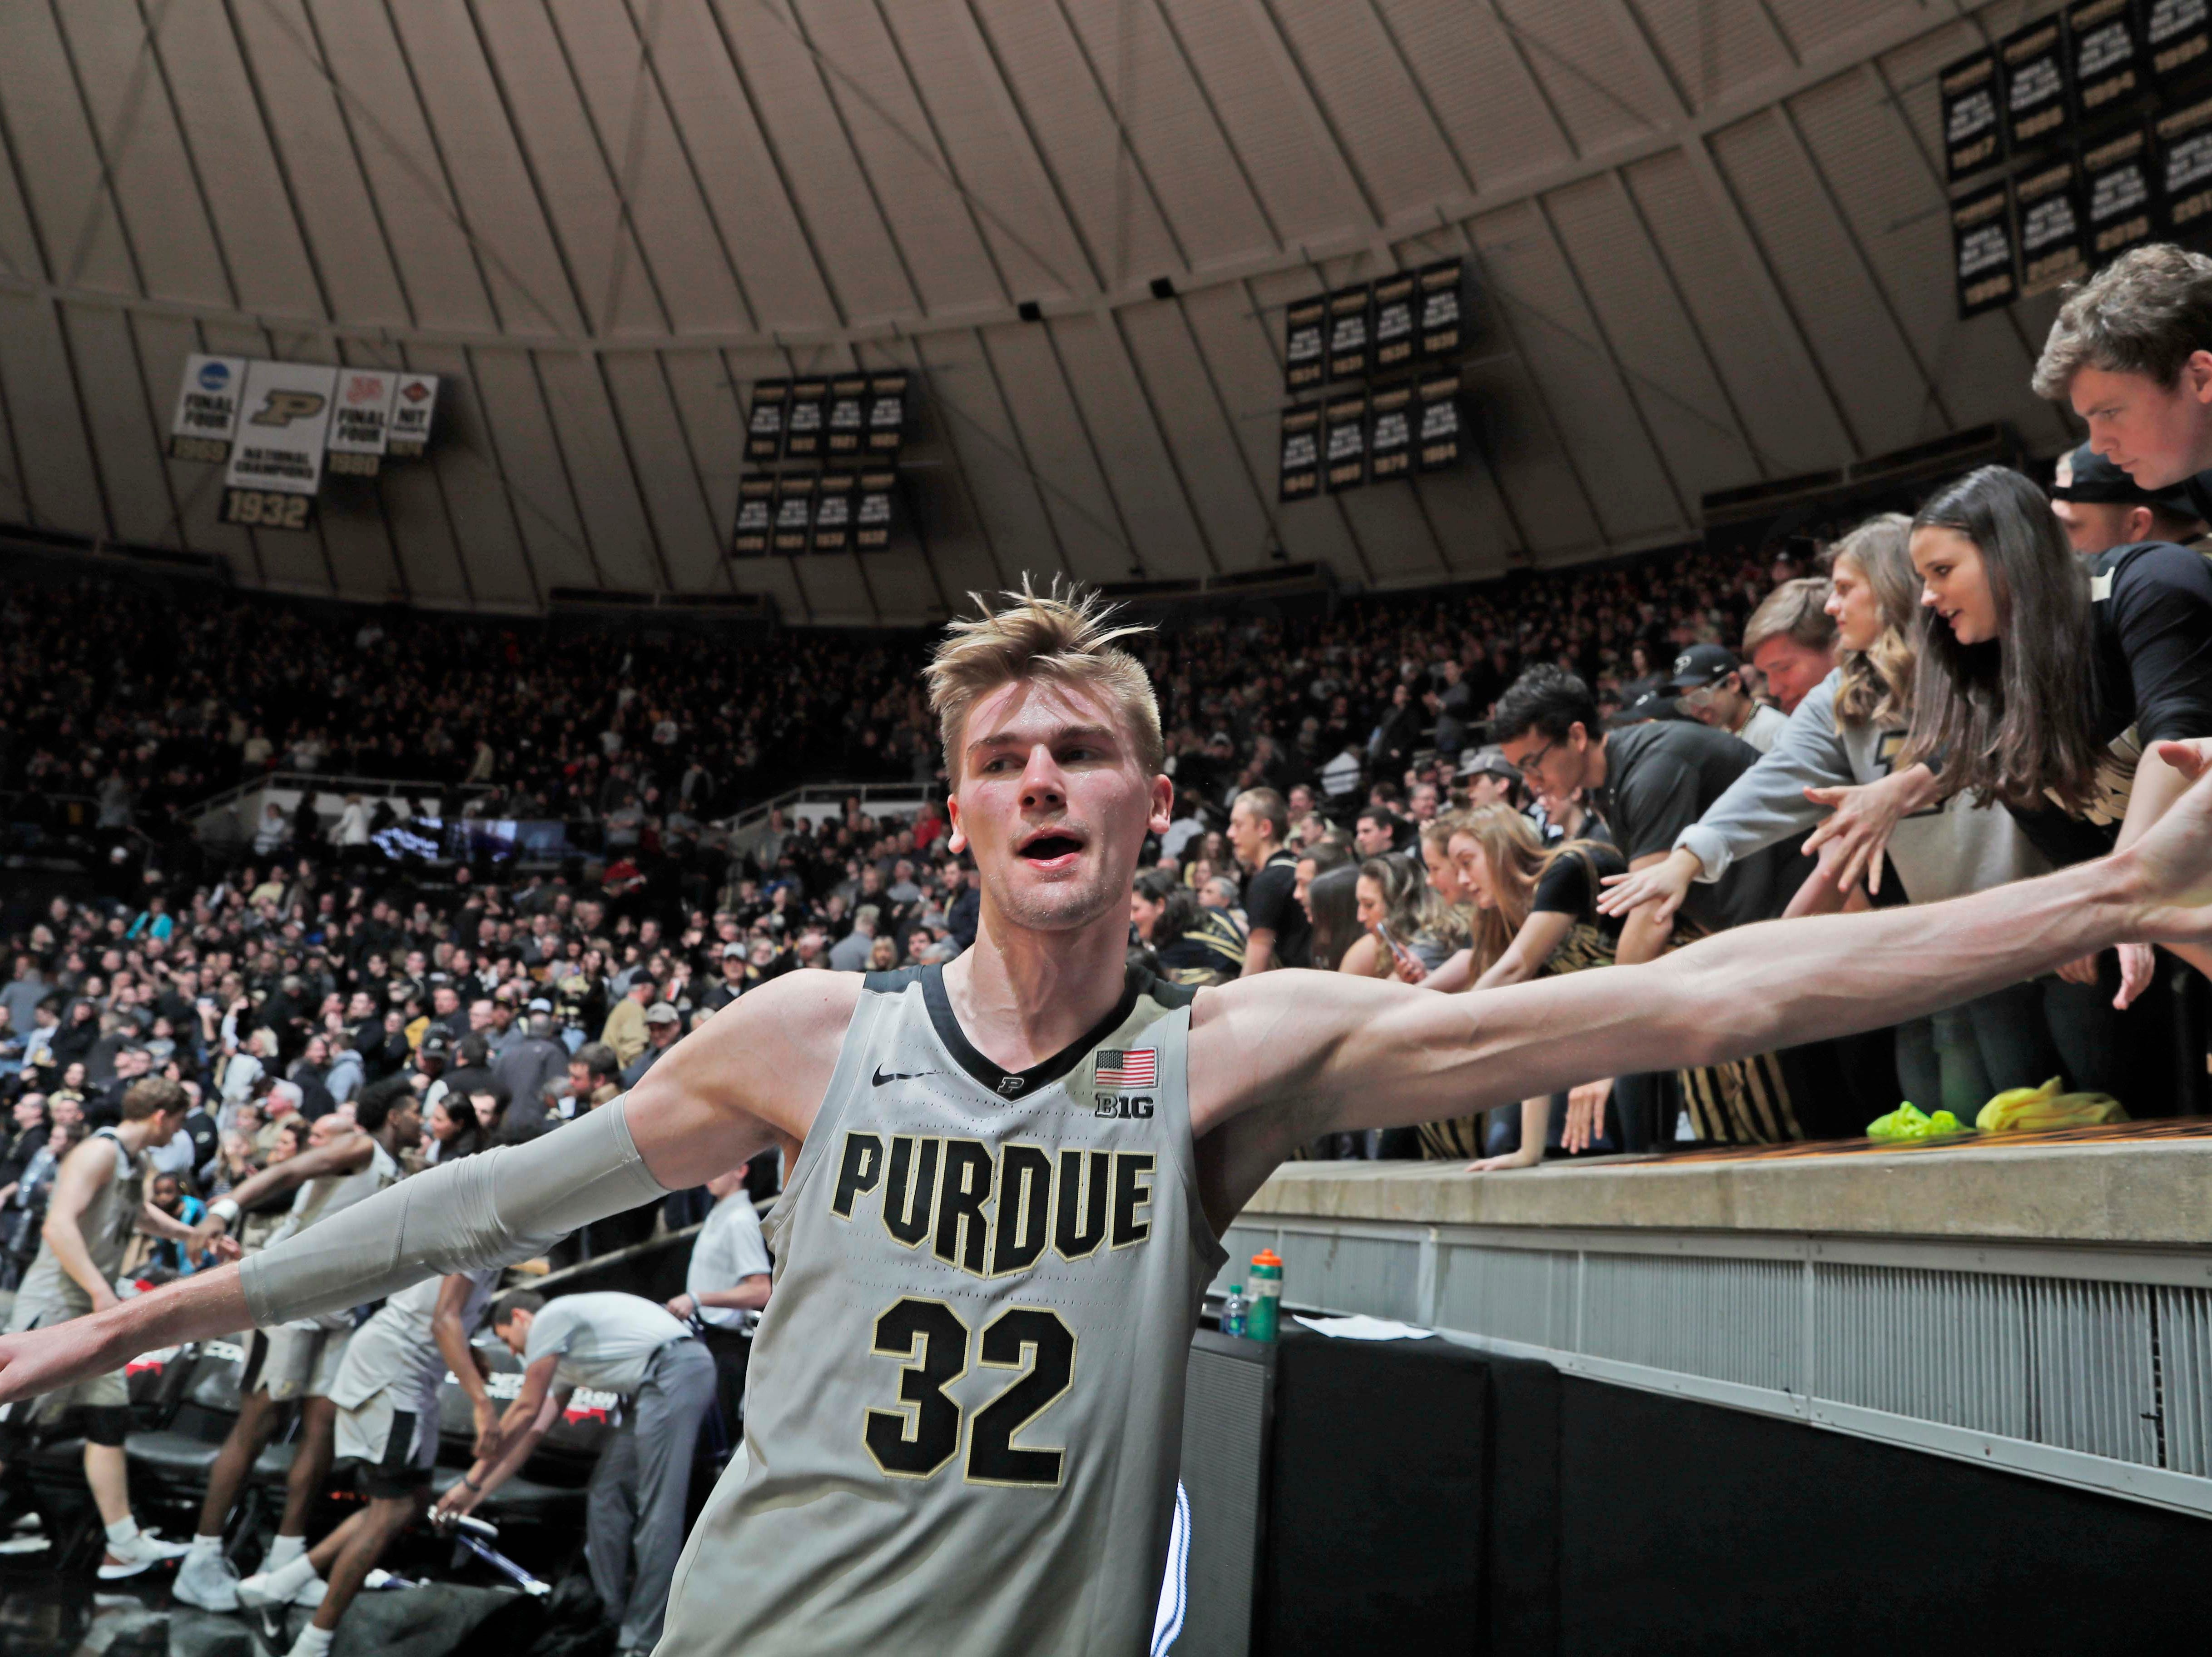 Feb 16, 2019; West Lafayette, IN, USA; Purdue Boilermakers center Matt Haarms (32) high fives the fans after the victory against the Penn State Nittany Lions at Mackey Arena. Mandatory Credit: Brian Spurlock-USA TODAY Sports